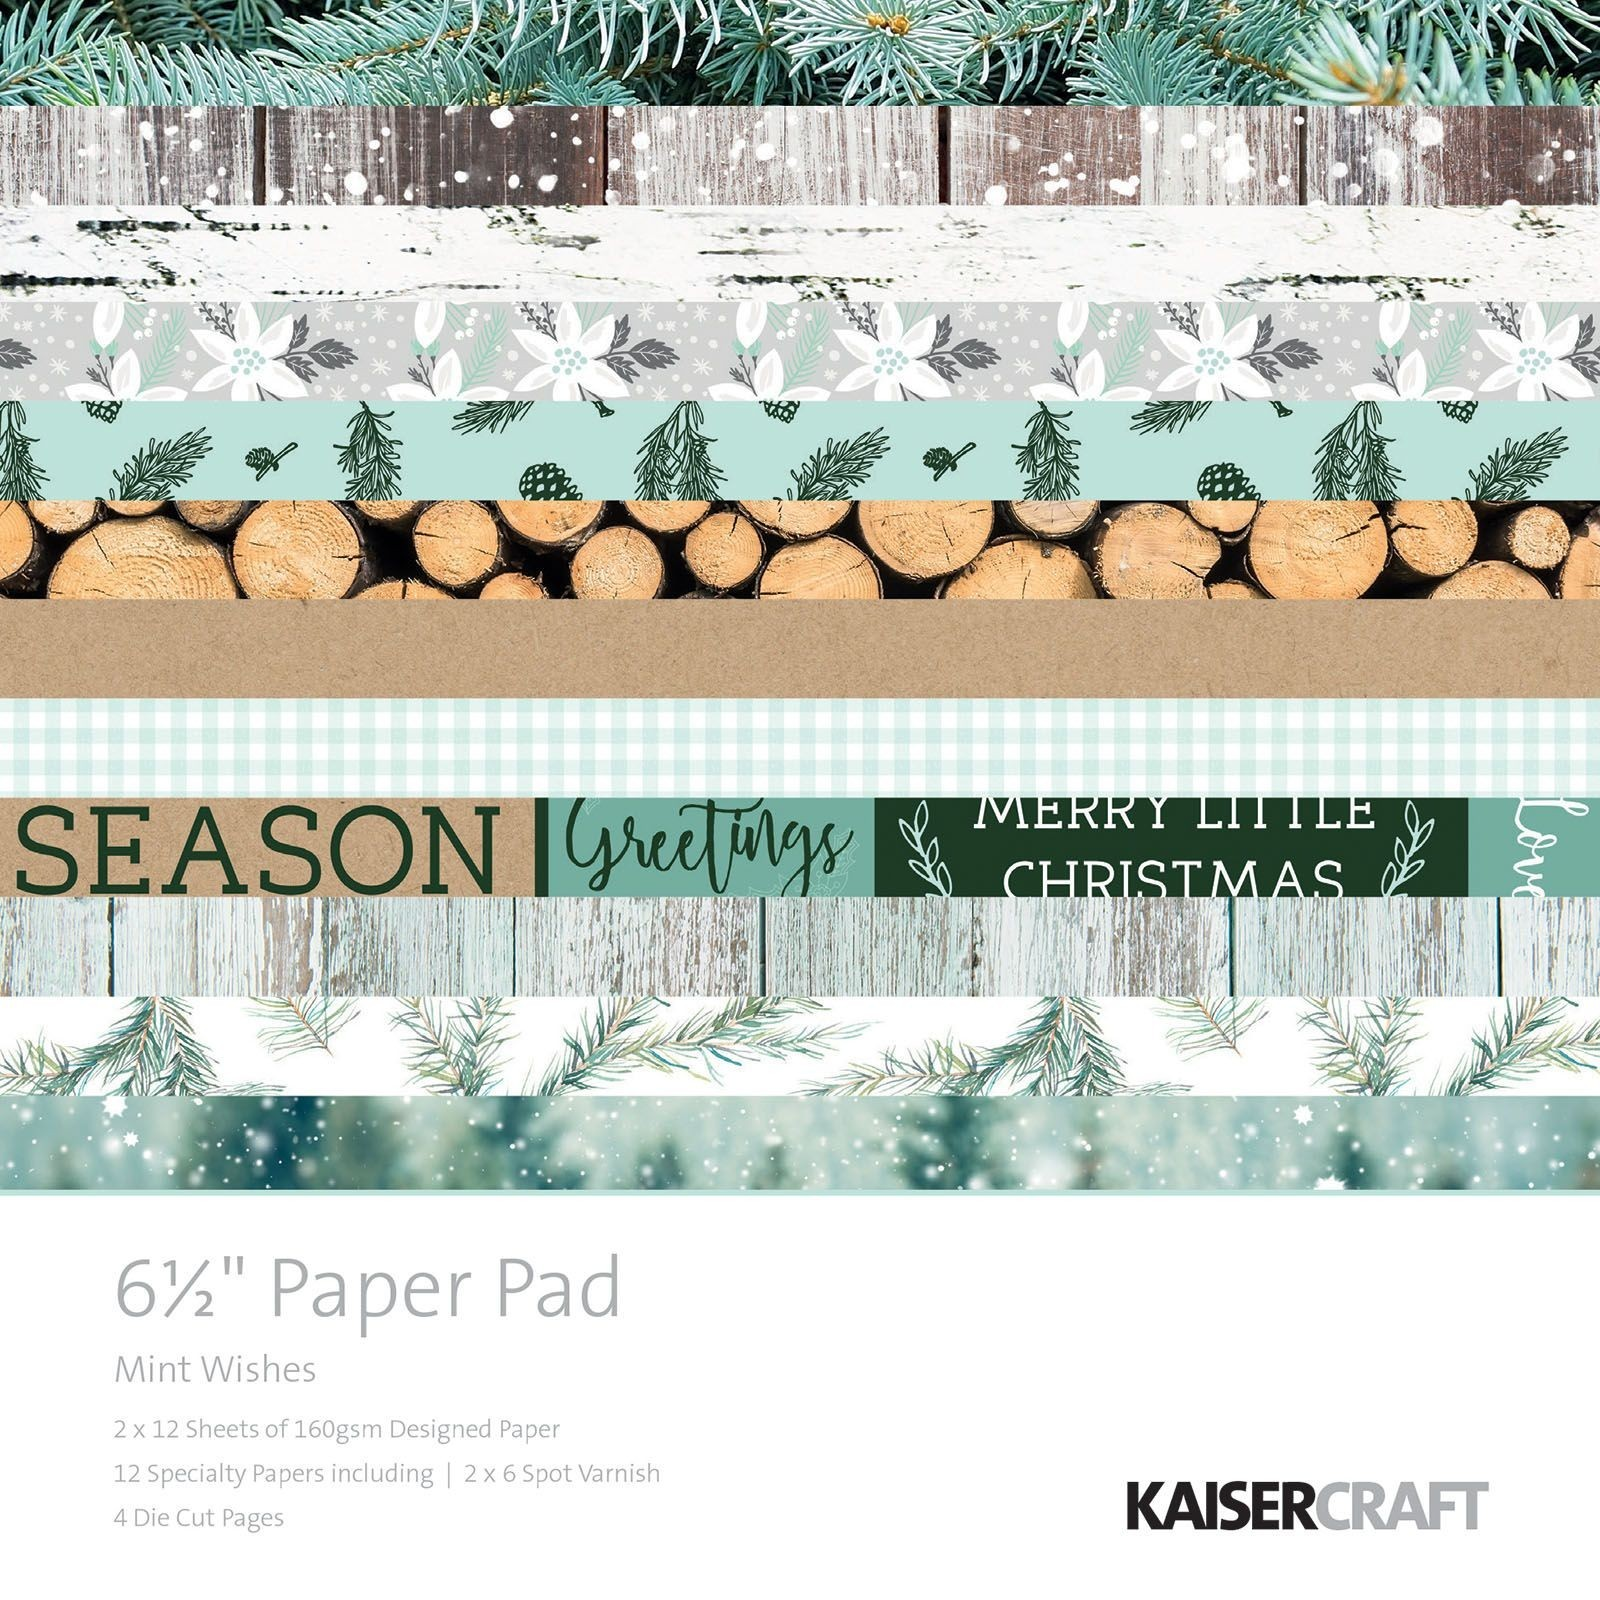 "Kaisercraft: Mint Wishes 6.5"" Paper Pad image"